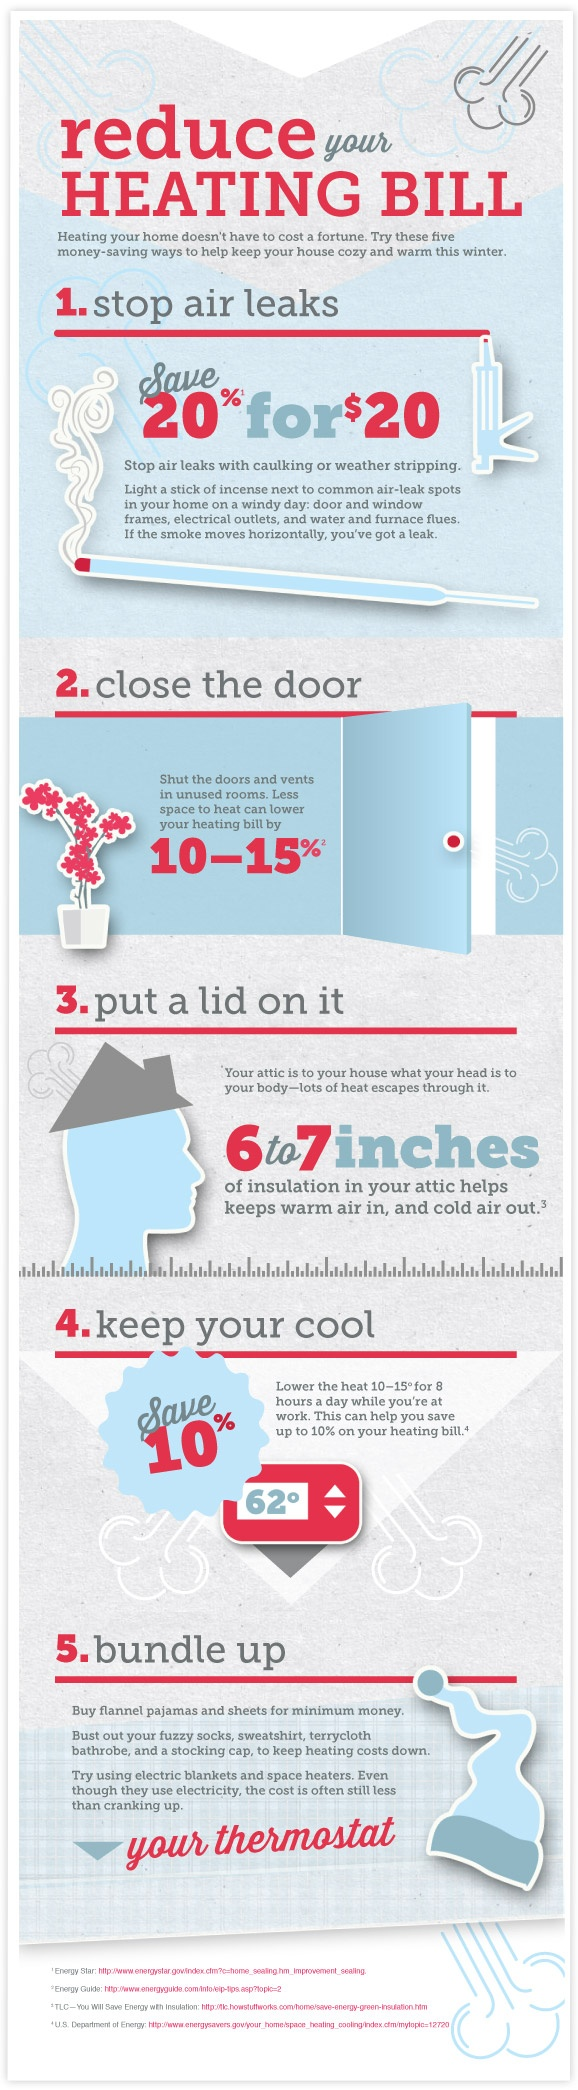 Some Tips For Efficient Heating This Winter If You Want To Stay